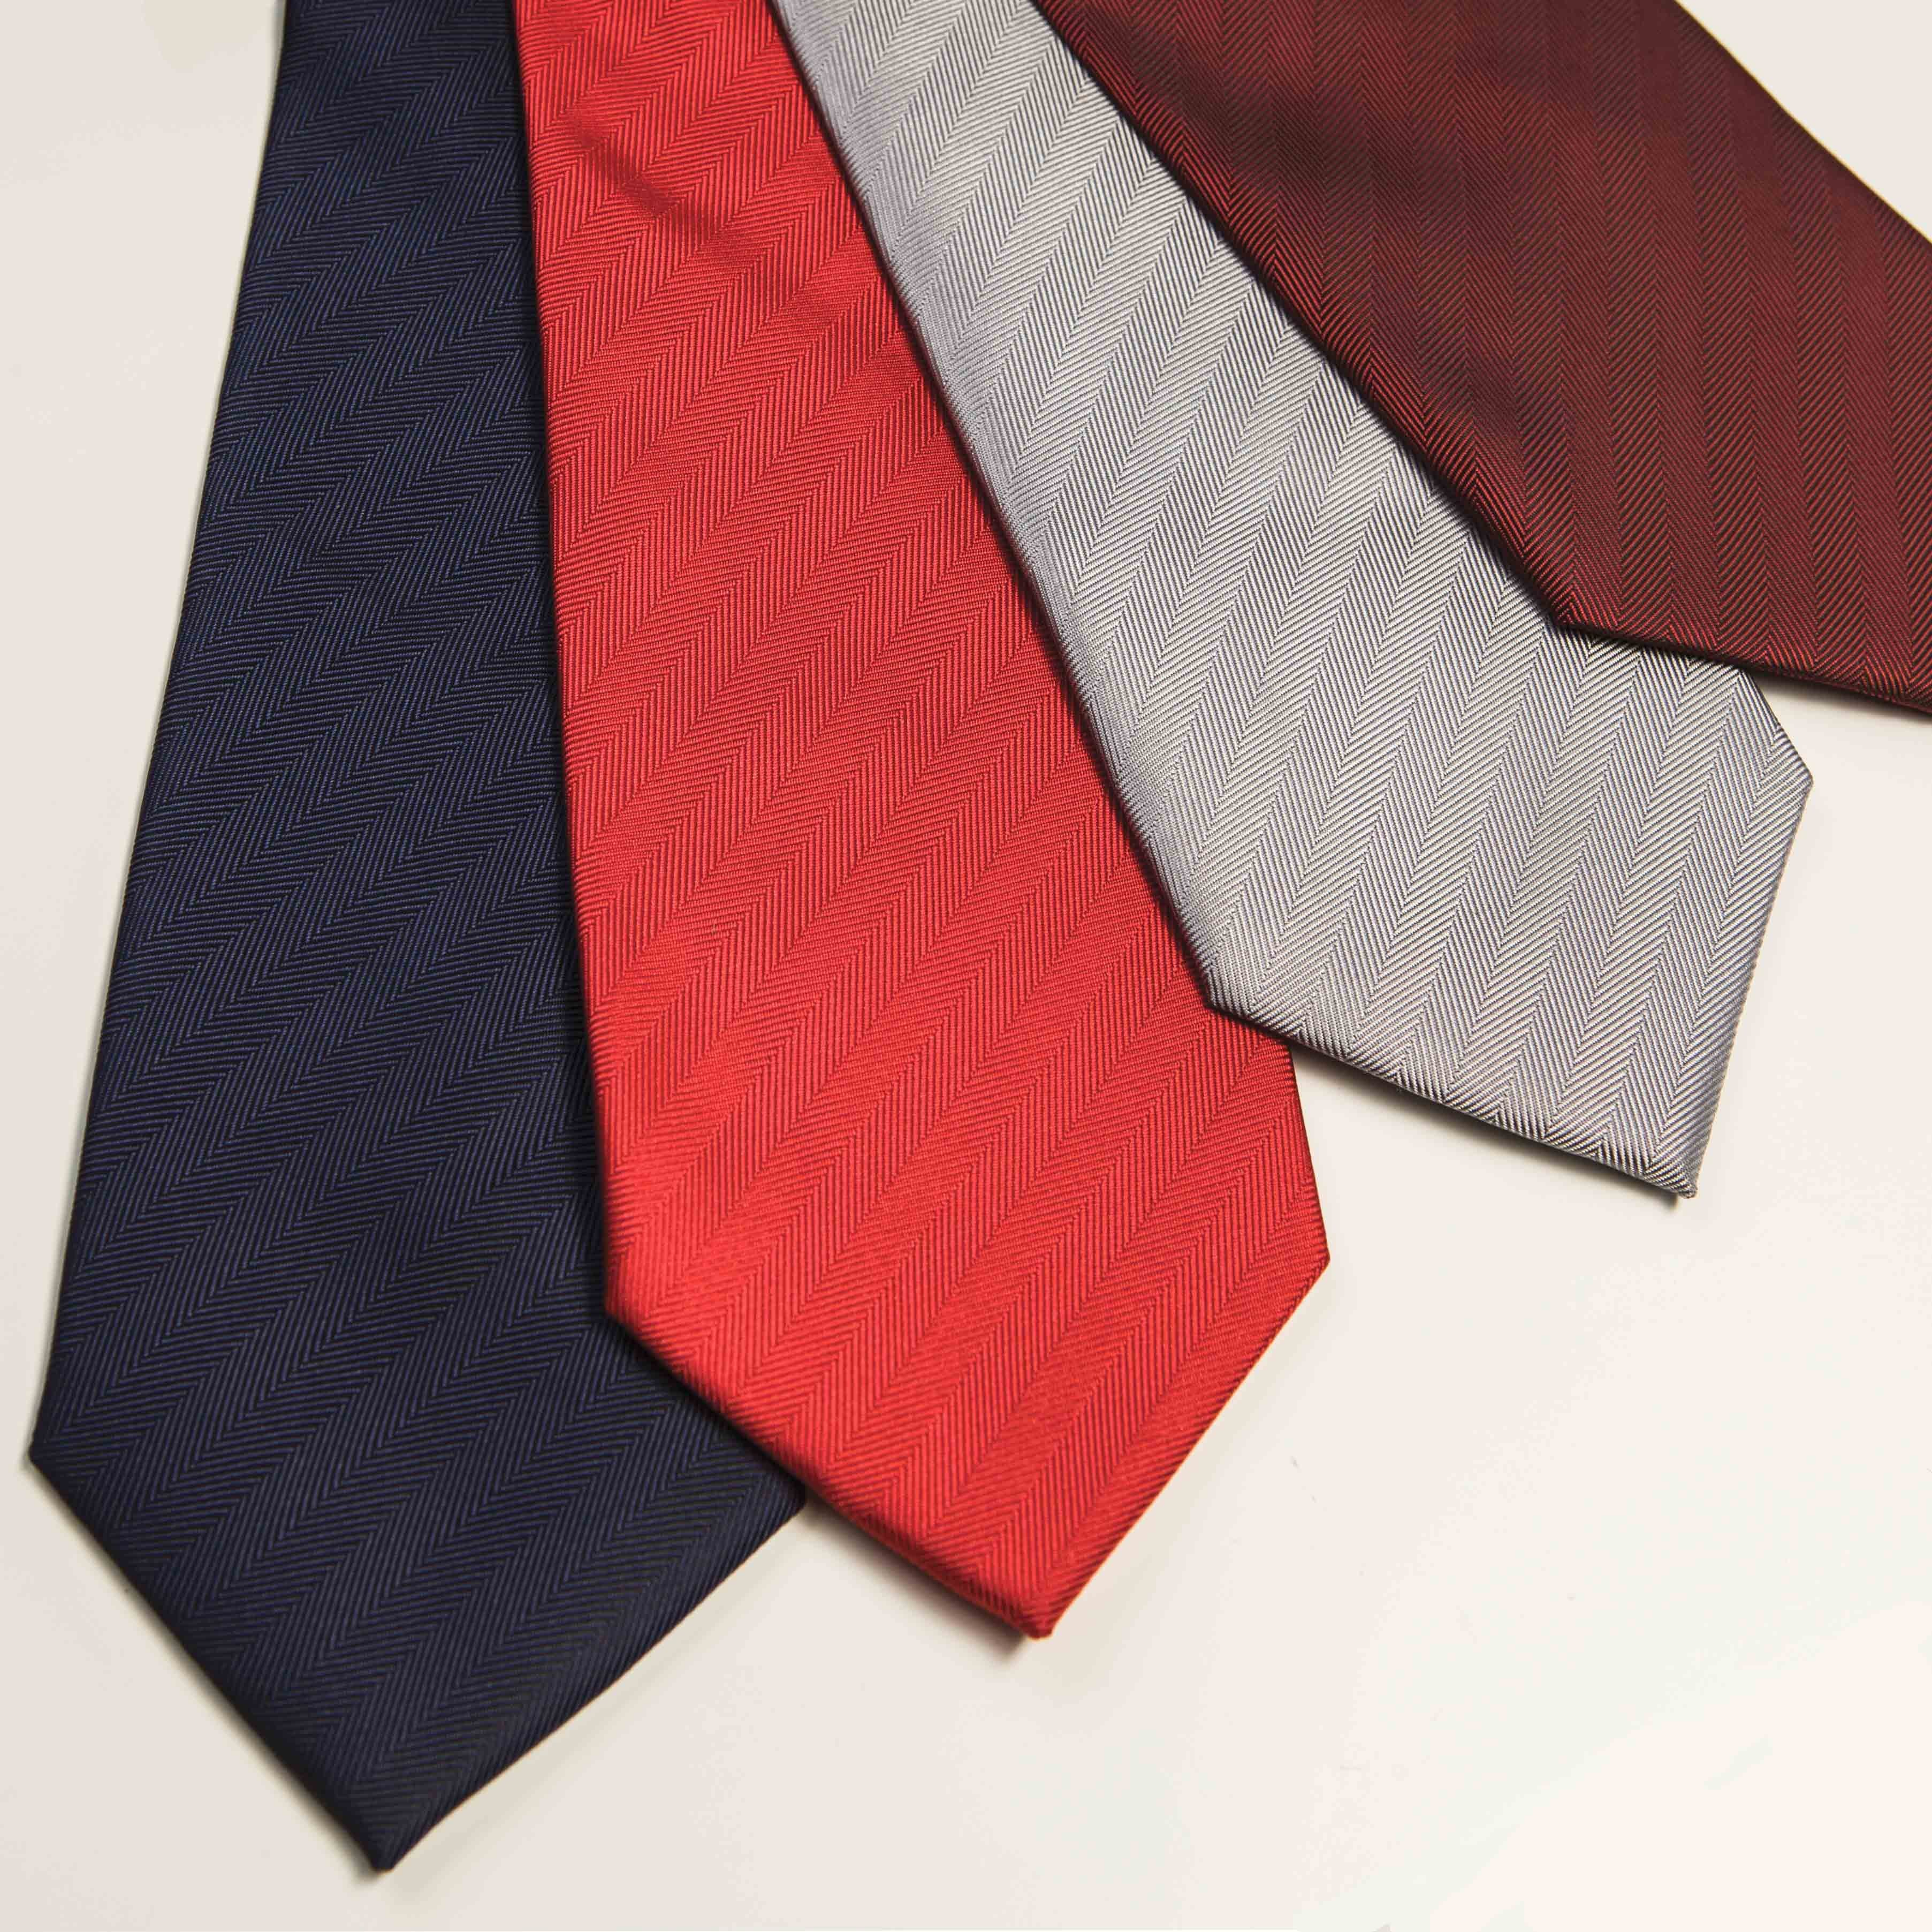 Tie up your Office Outfit